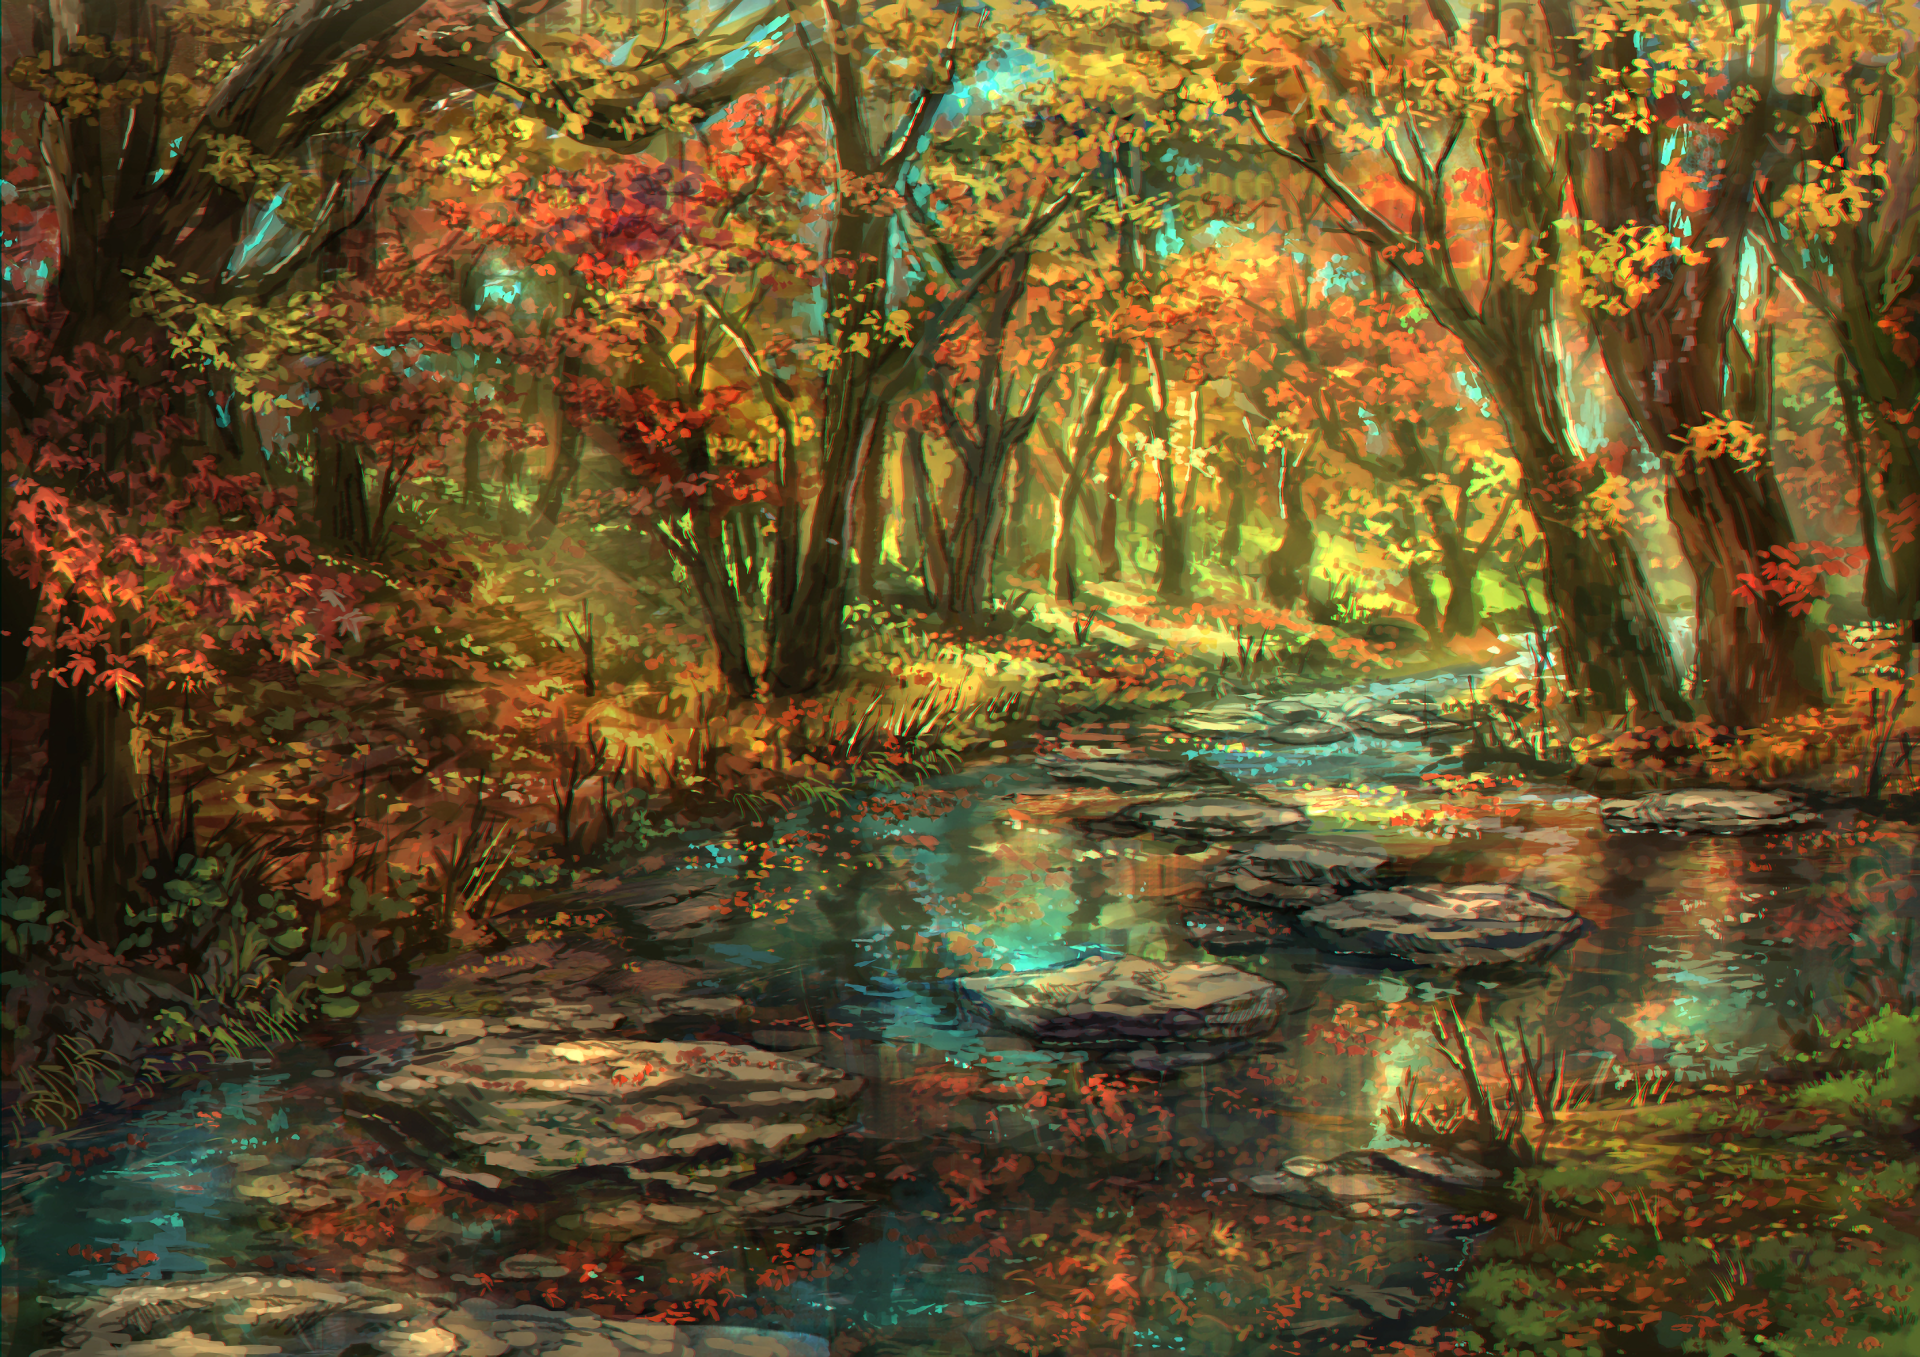 Anime - Original  Artistic Nature Foliage Fall Tree Forest River Original (Anime) Leaf Wallpaper